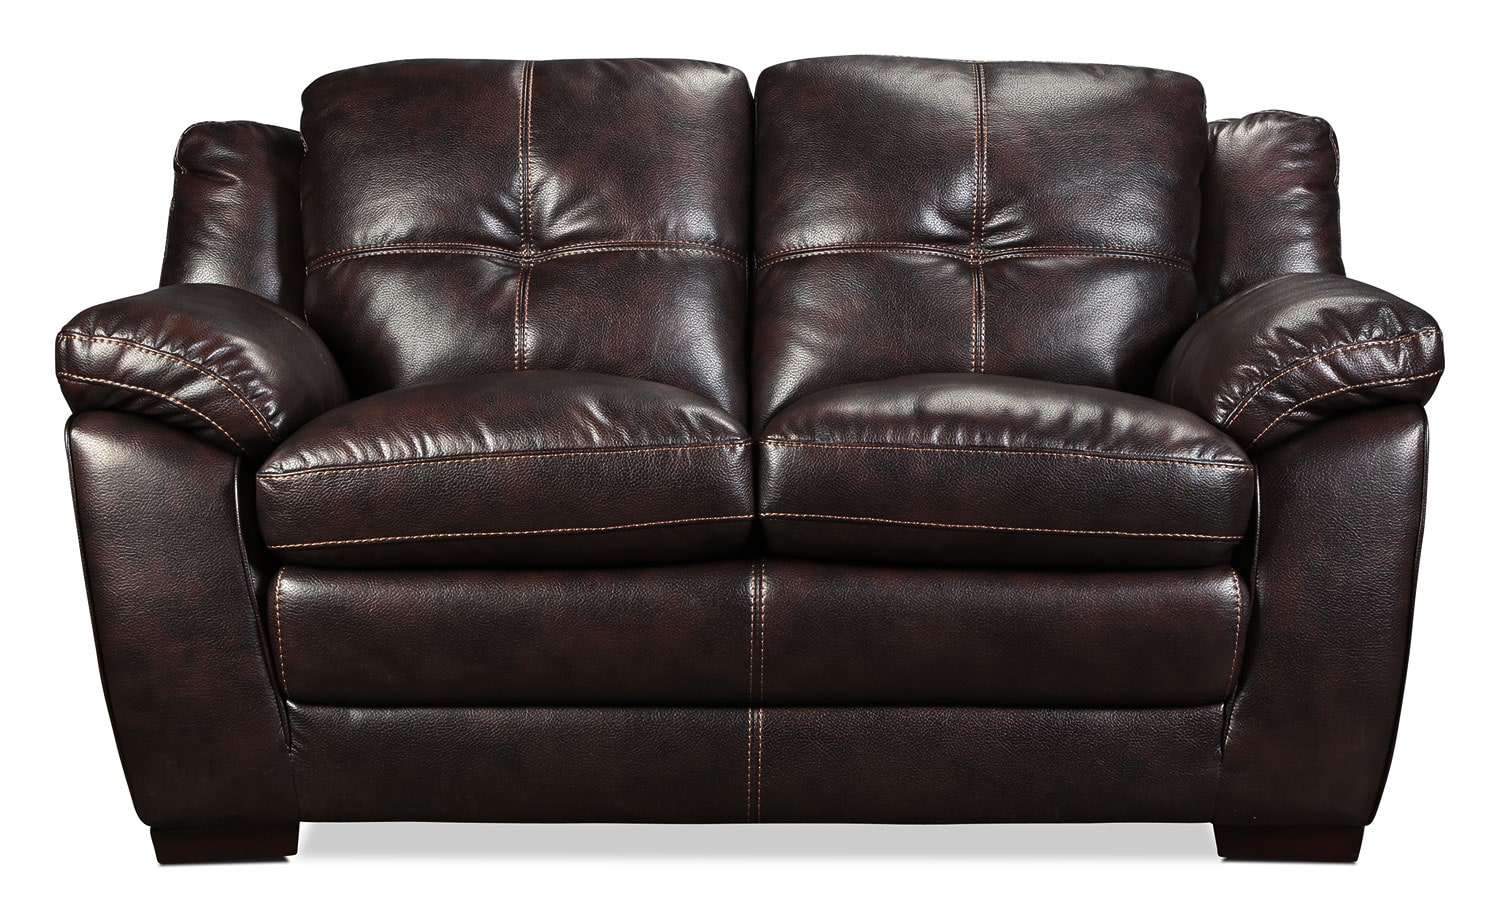 Lytton Loveseat - Brown